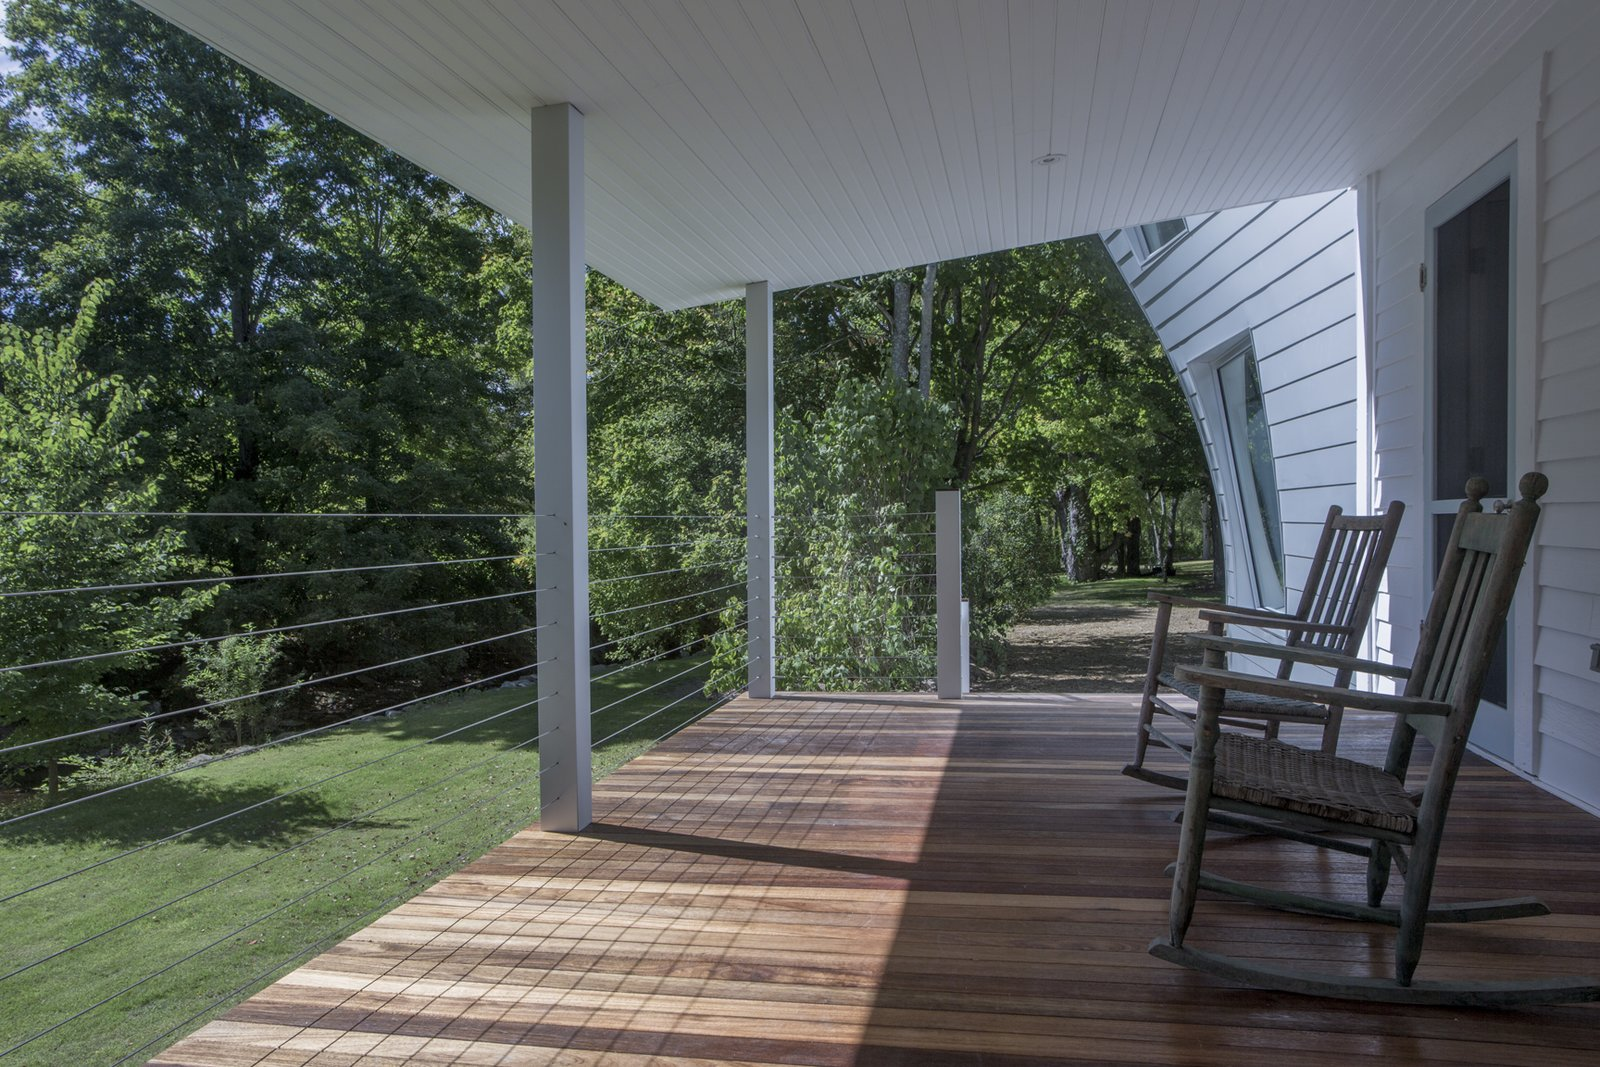 Anodized aluminum porch columns match the addition siding, and stainless steel cables, virtually invisible, maximize the creek side views. Mahogany floors and bead board ceilings complement the farmhouse's original clapboard siding.  twist farmhouse